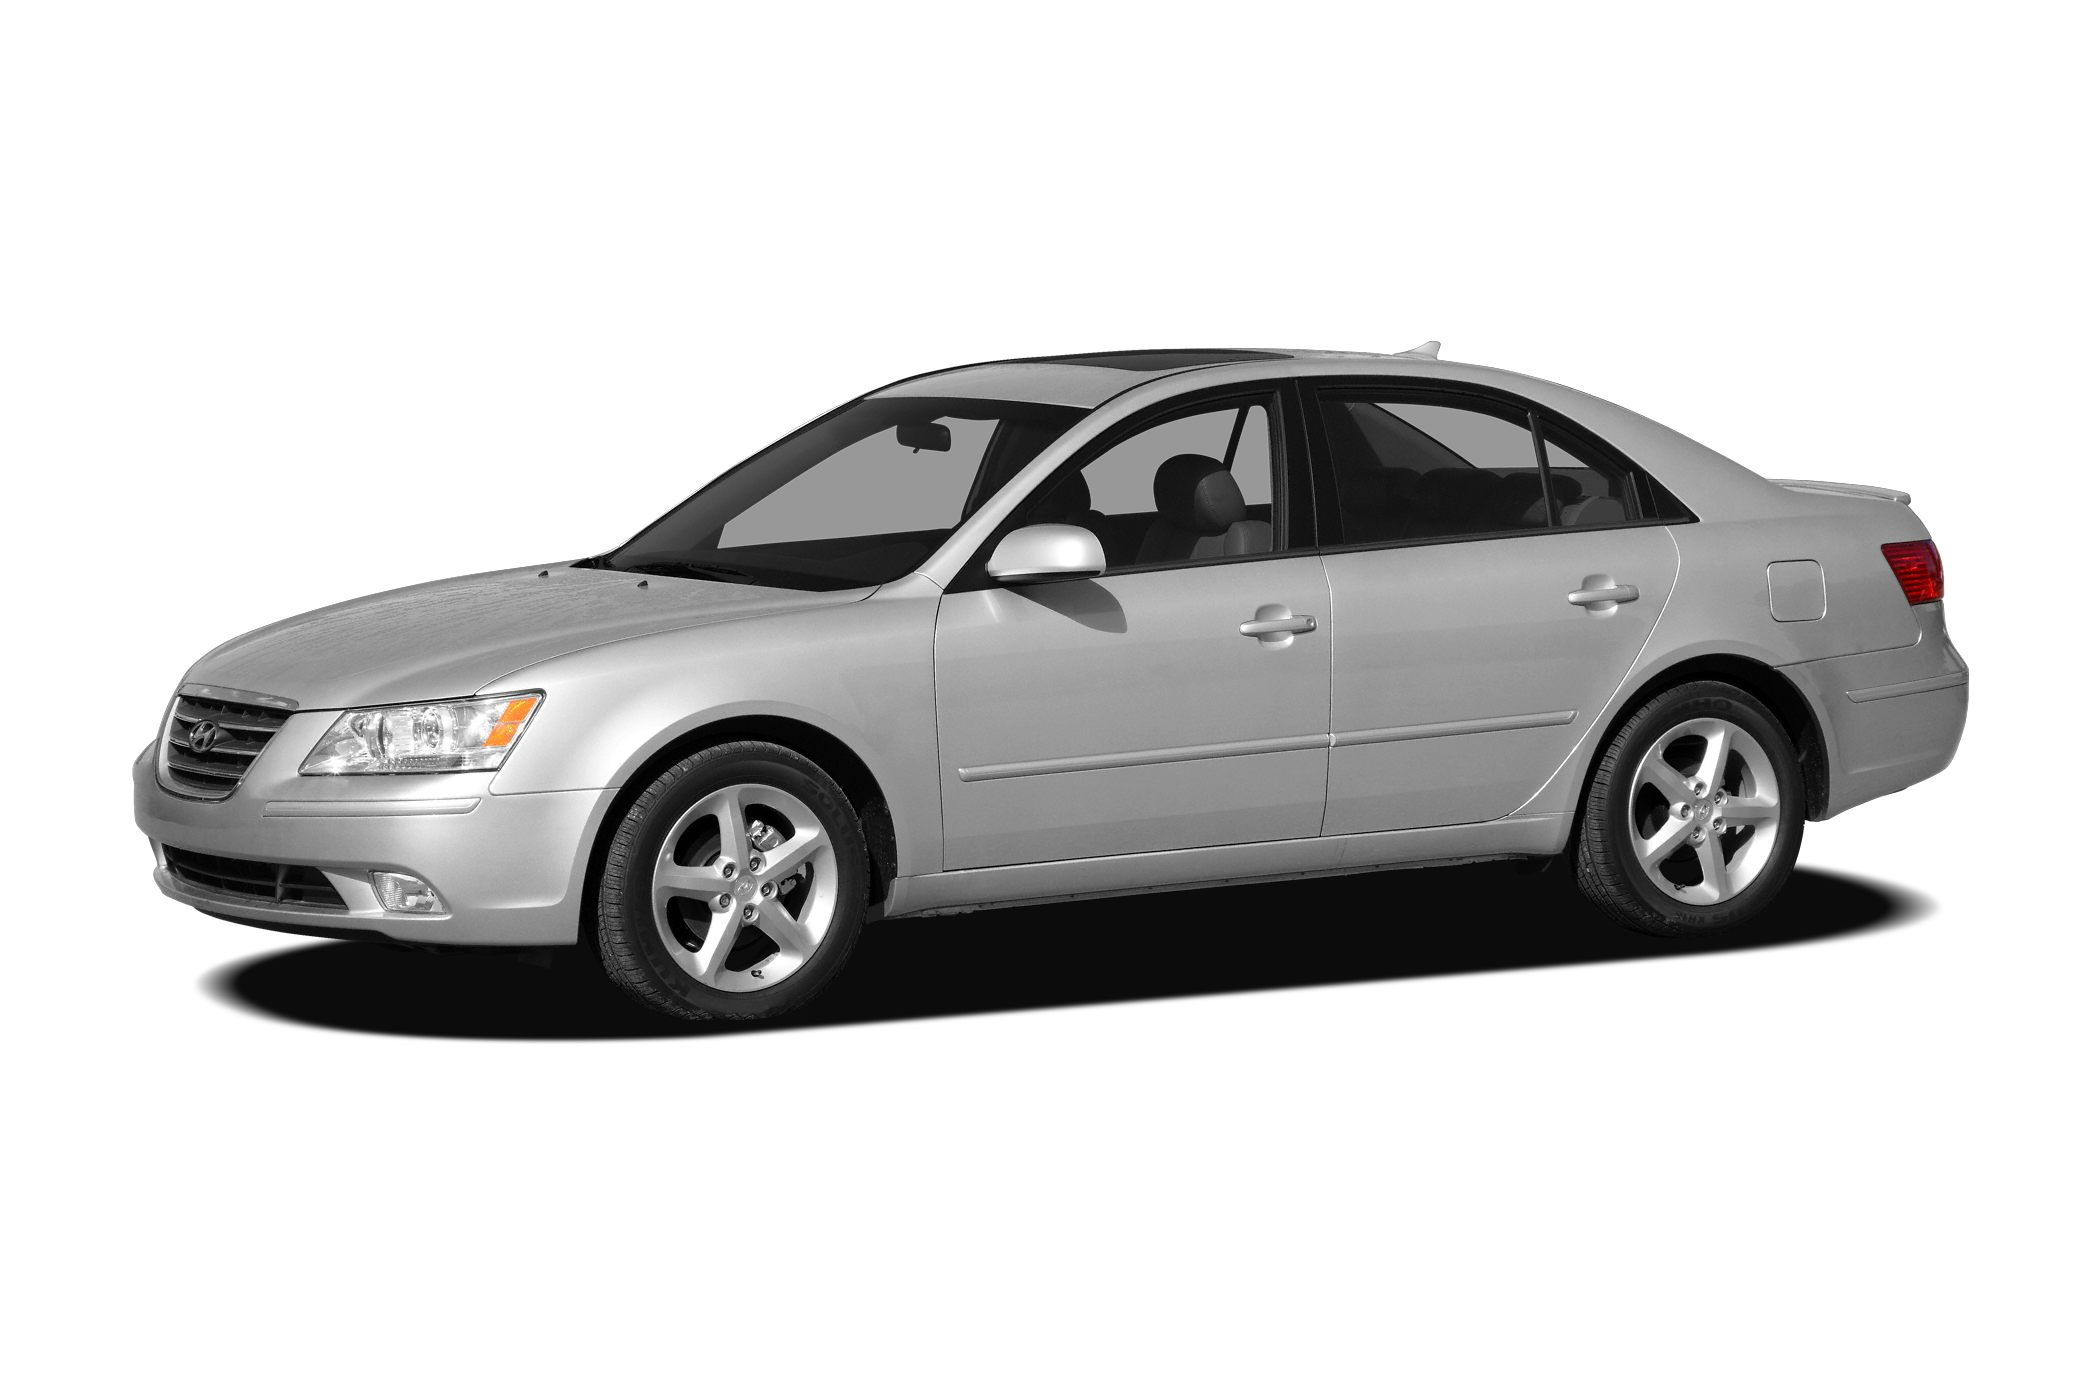 2009 Hyundai Sonata GLS Lifetime Engine Warranty at NO CHARGE on all pre-owned vehicles Courtesy